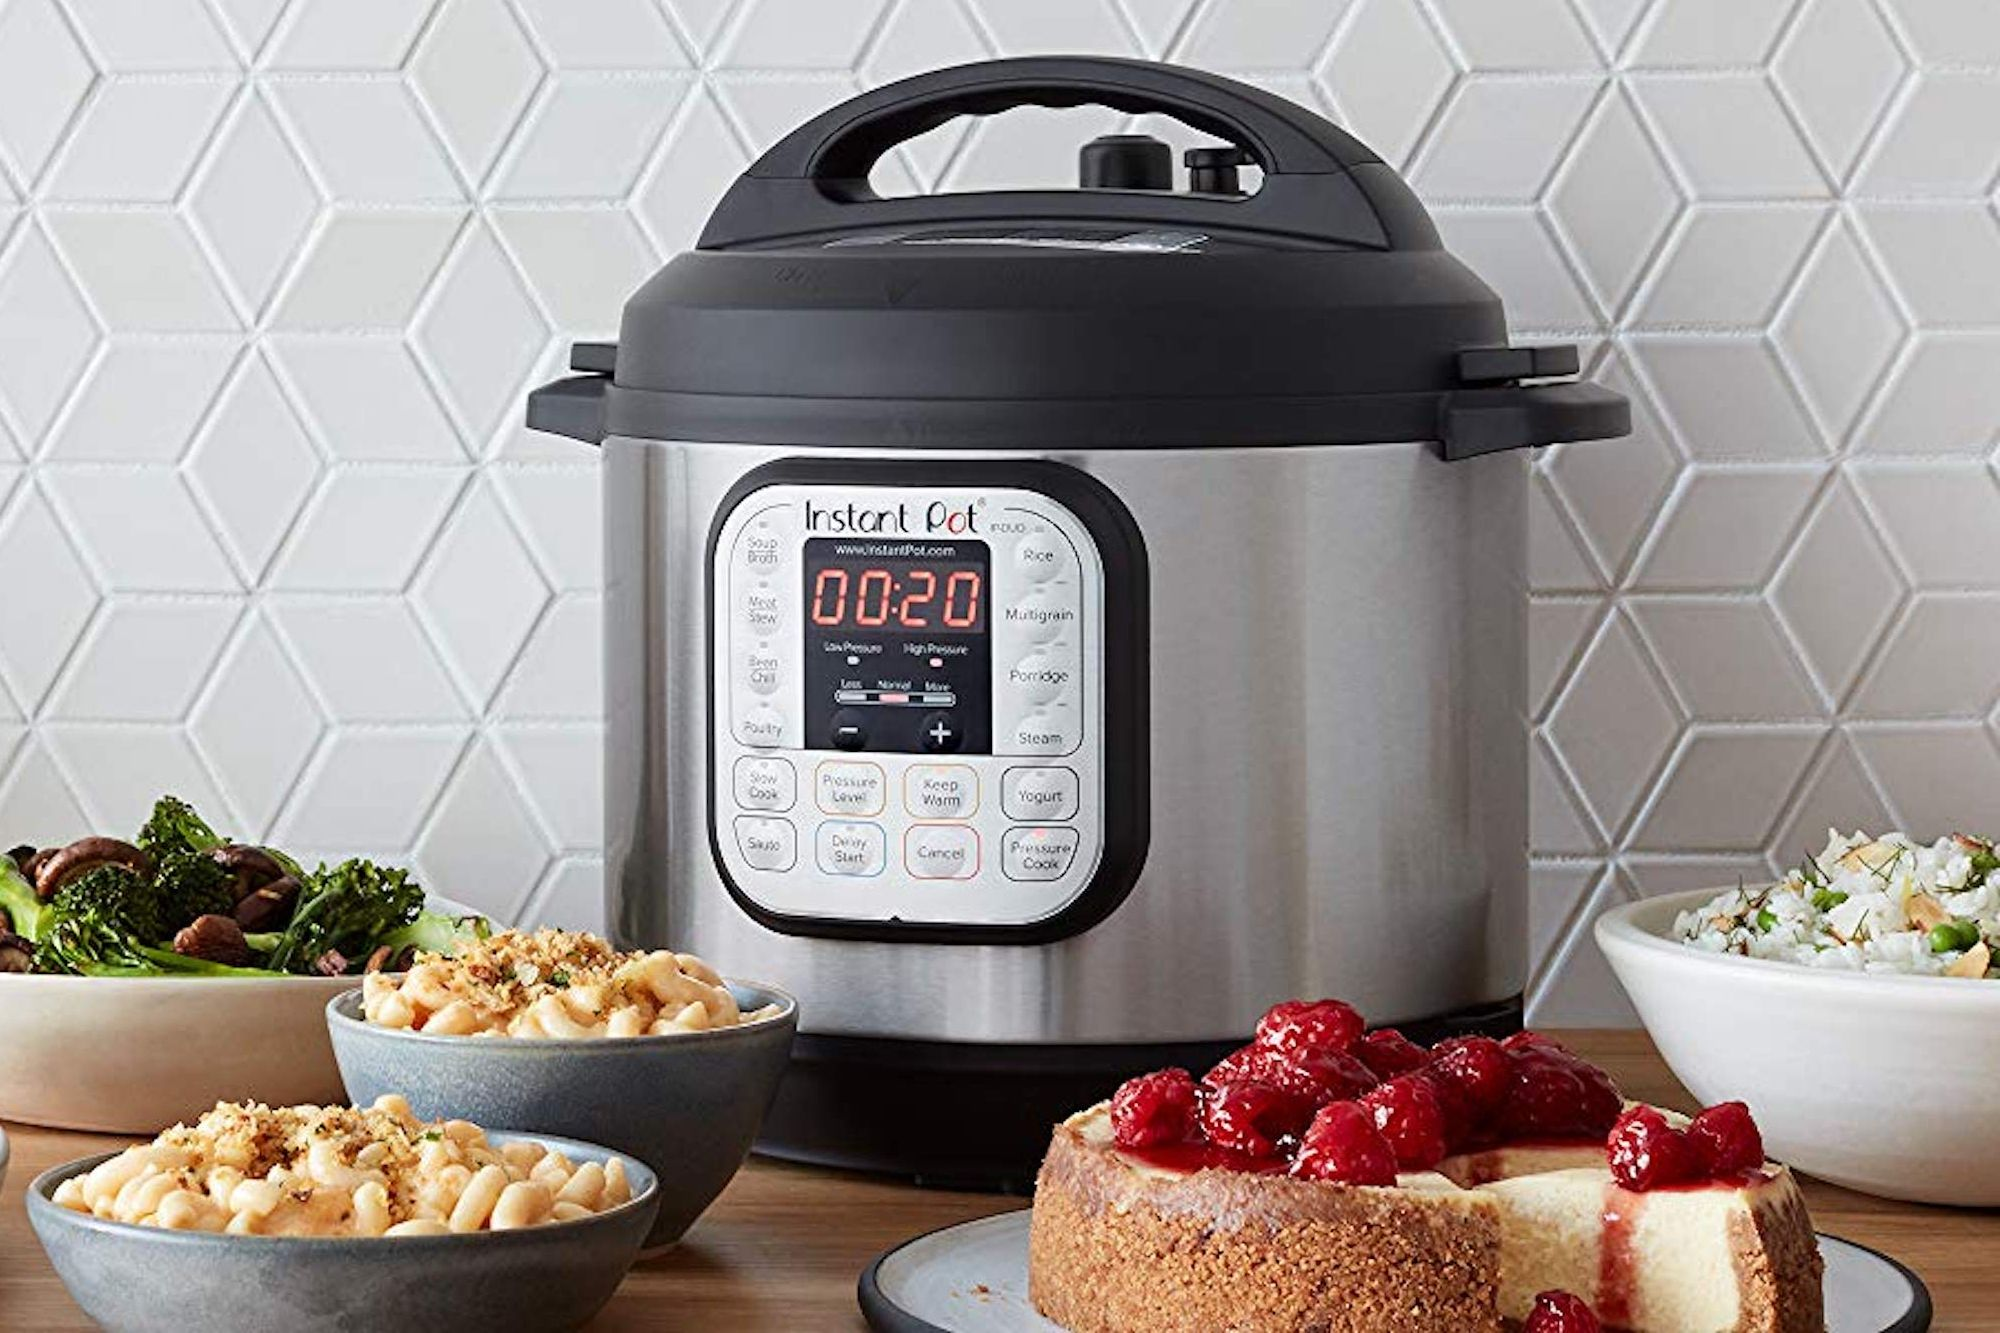 Get $20 Off Amazon's Best-Seller, the Instant Pot